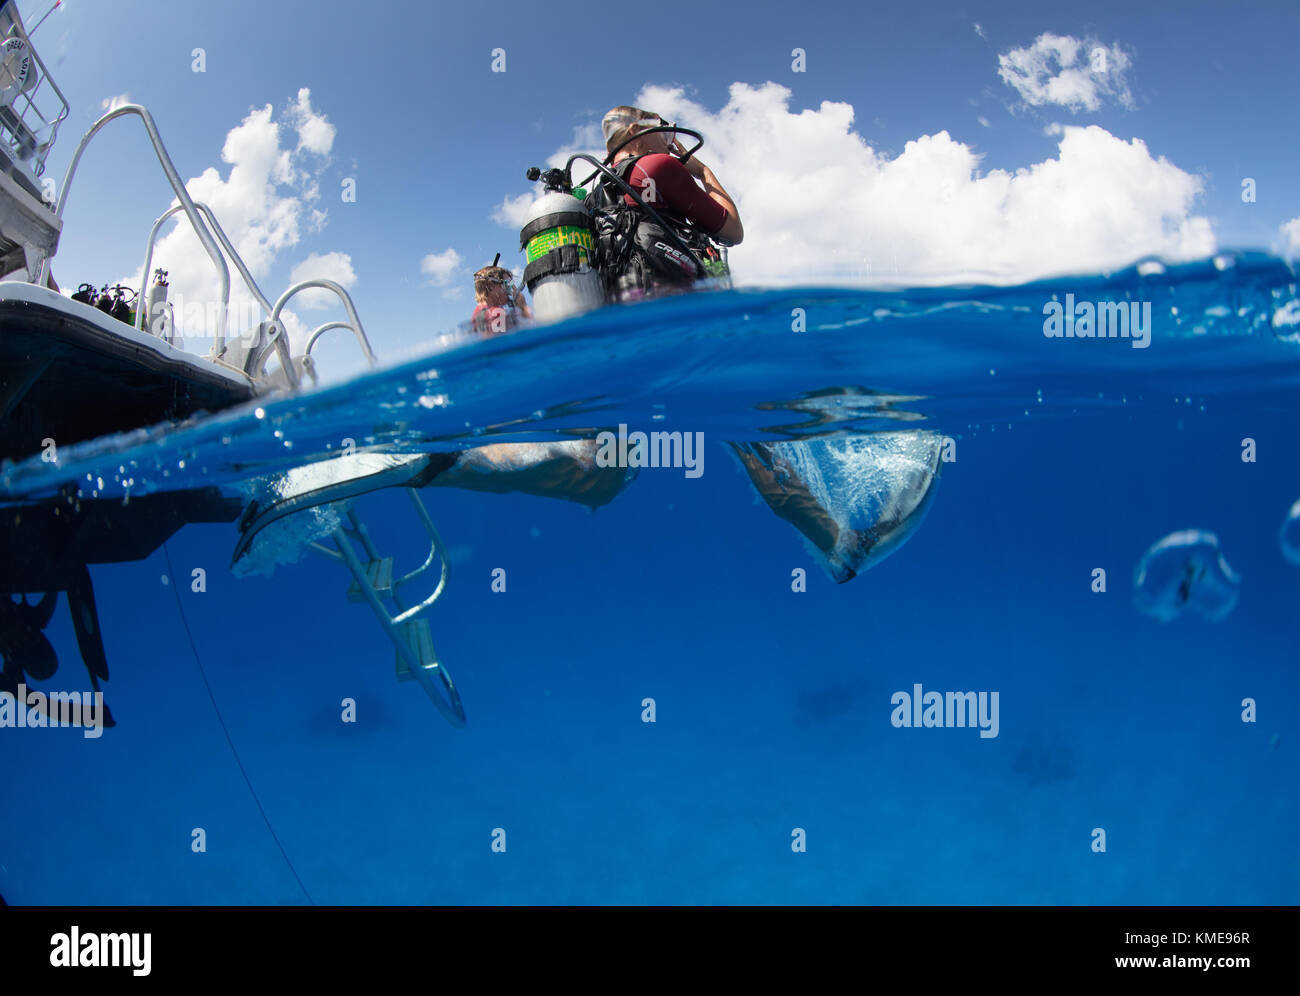 Scuba divers enter water doing giant stride. Stock Photo